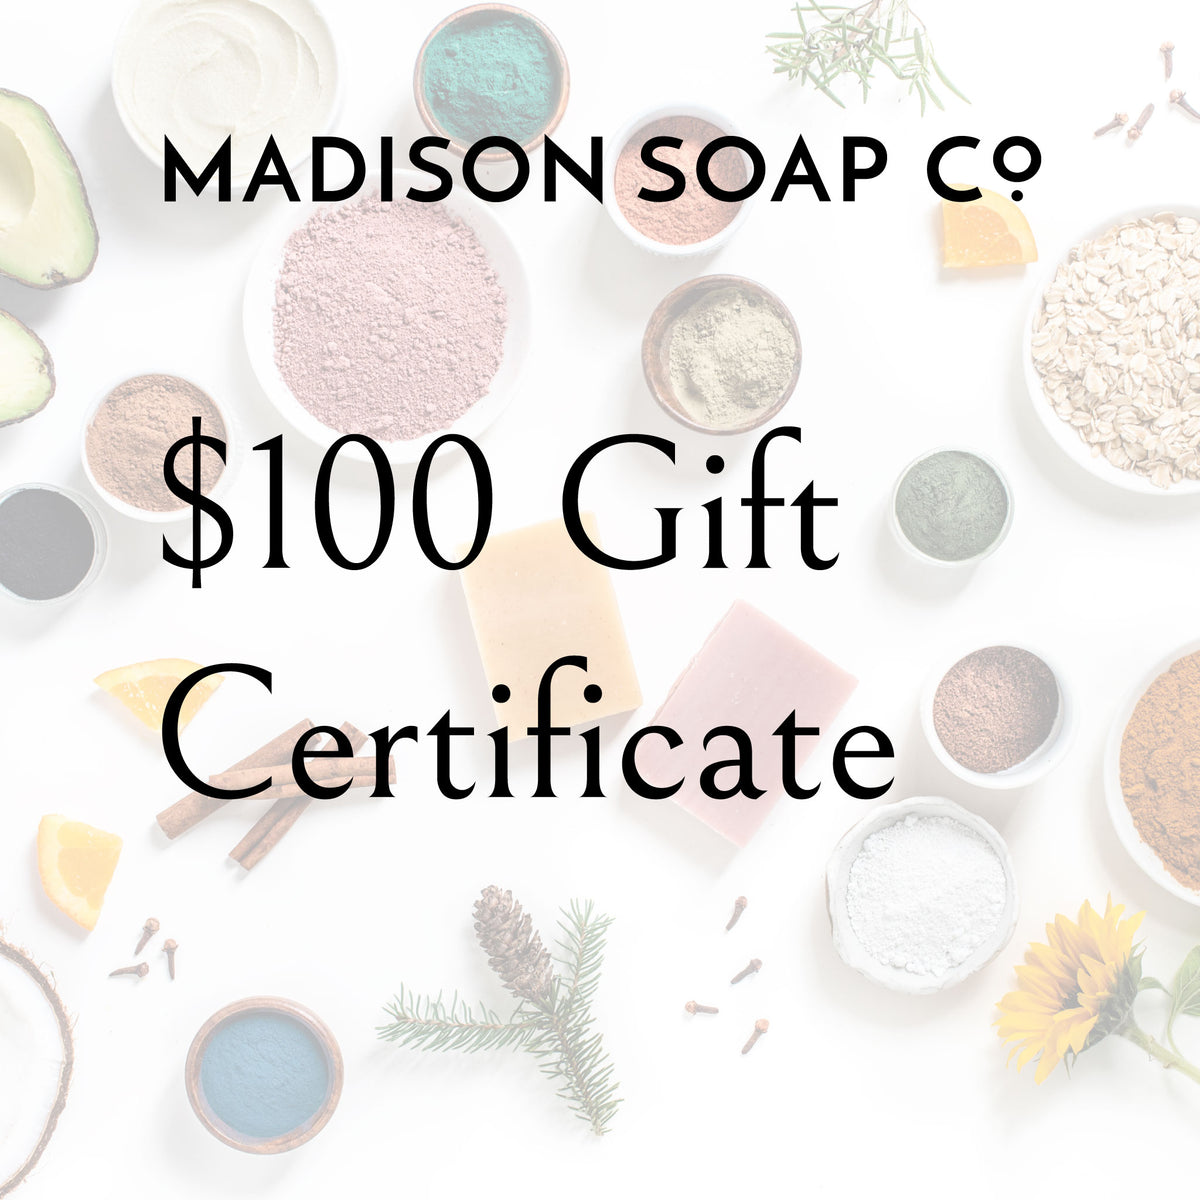 Gift Certificate Gift Certificate by Madison Soap Company from Madison Soap Company